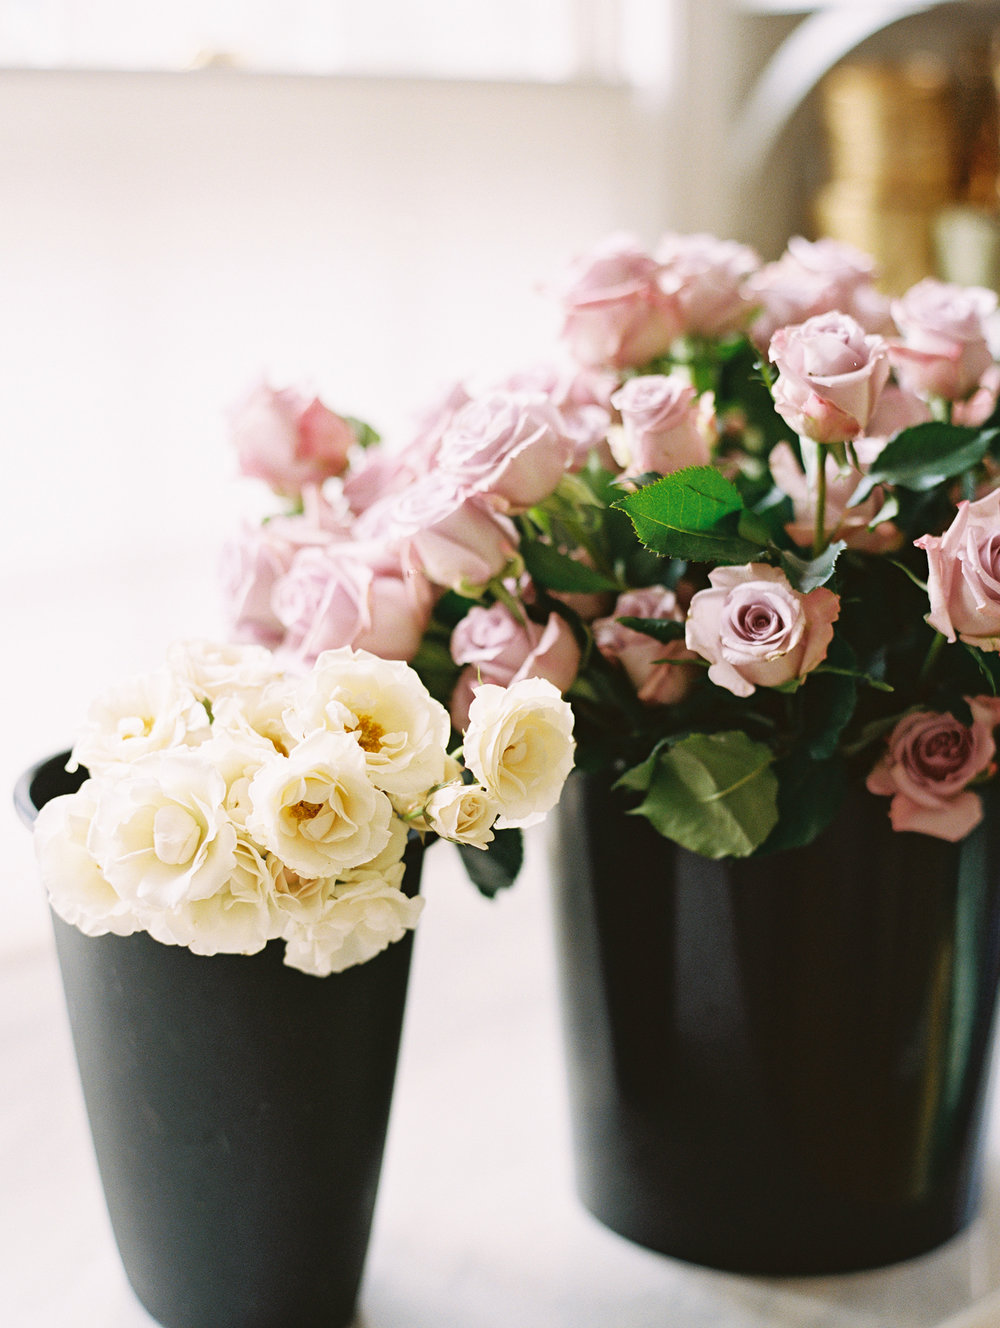 Wedding Design, Maryland, Baltimore, Darling and Daughters Florals, Washington DC, Richmond, Cape May Collaboration-E012.jpg